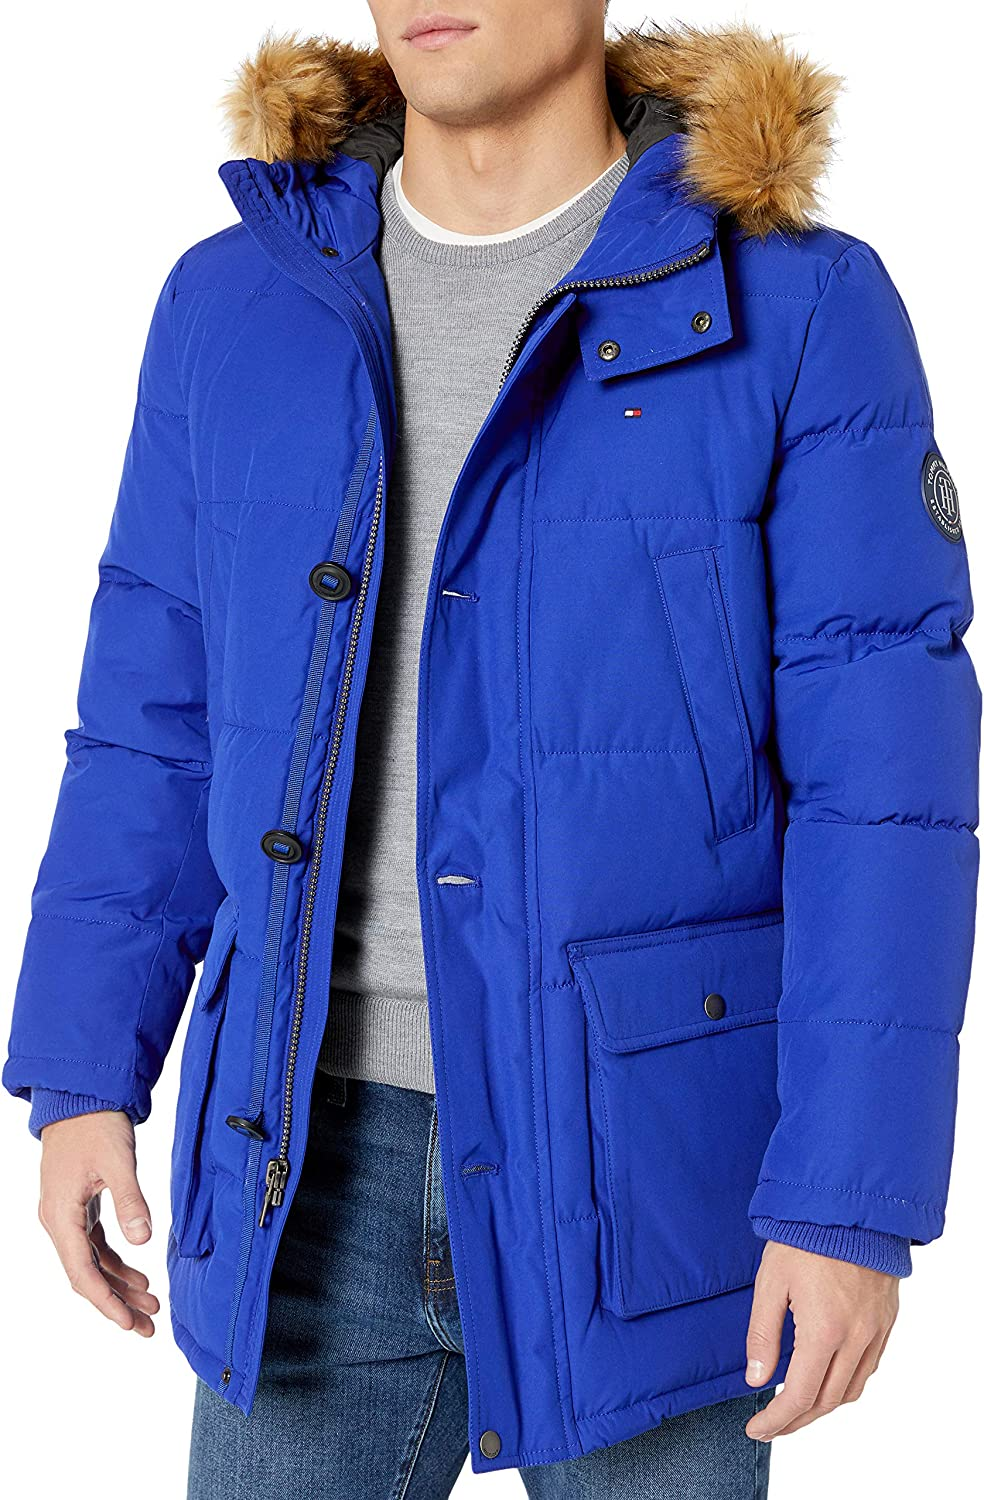 Tommy Hilfiger Mens Arctic Cloth Full Length Quilted Snorkel Jacket Regular and Big and Tall Sizes